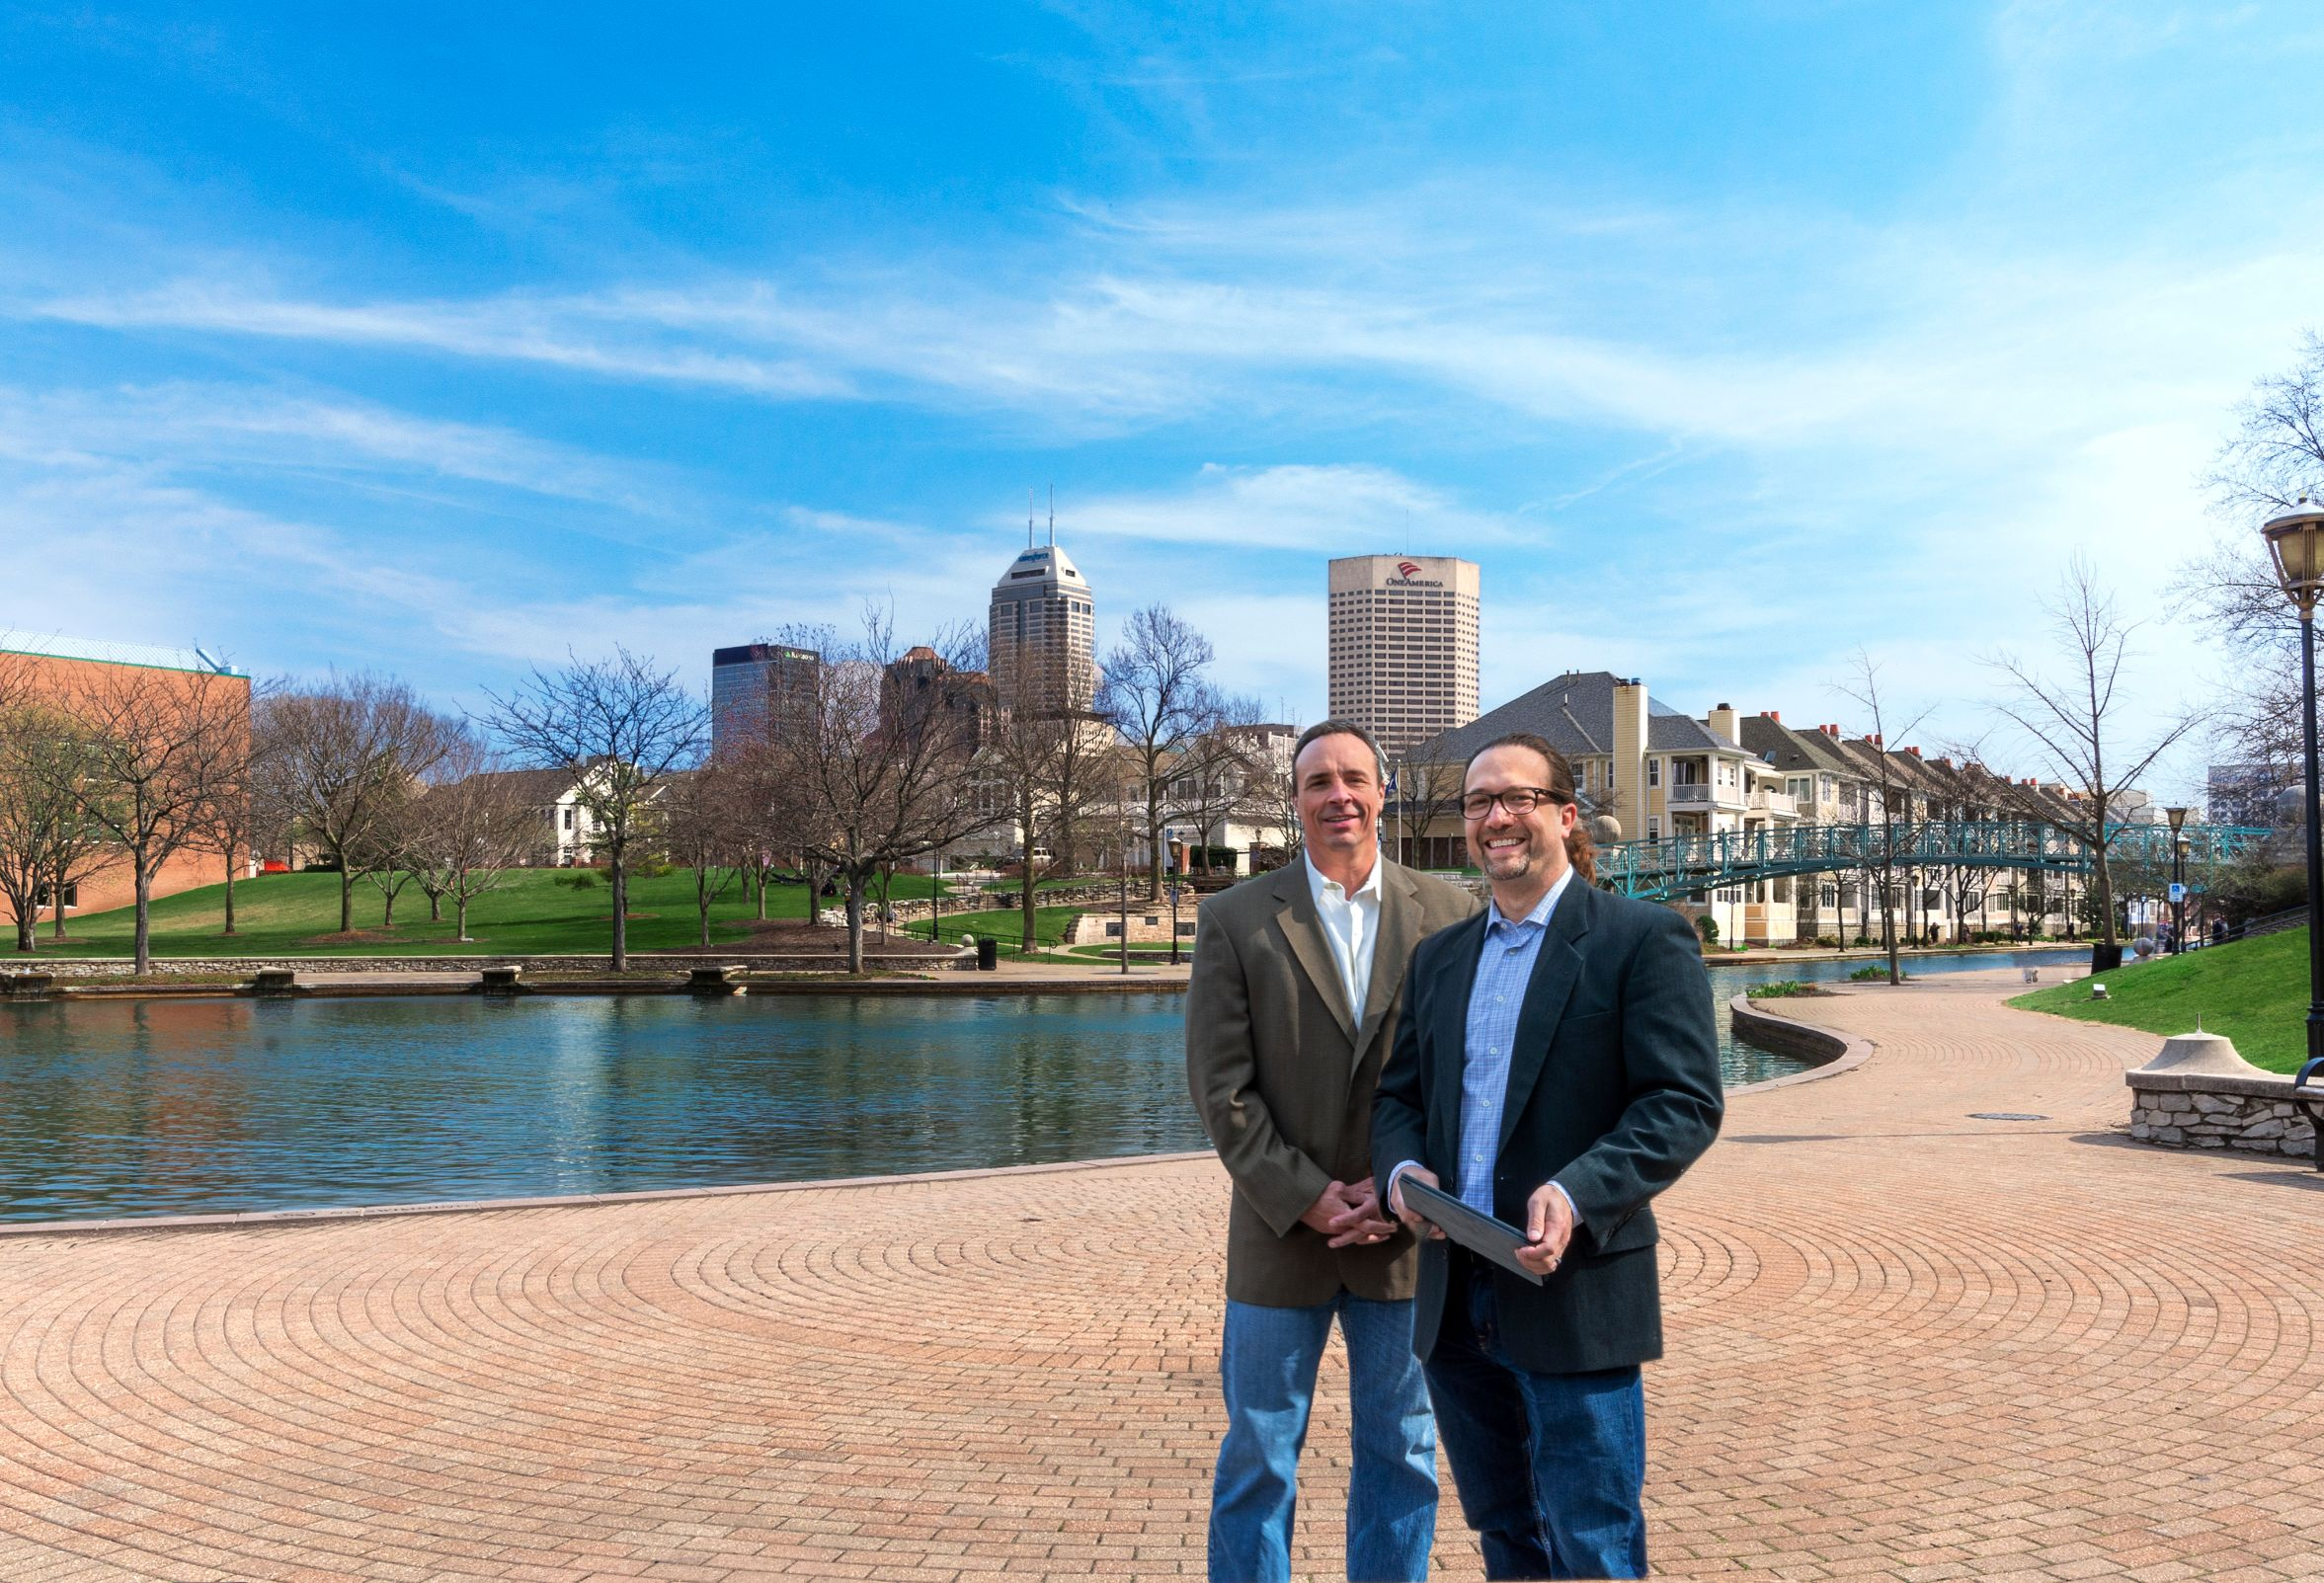 Robert and Al in front of Canal in Indianapolis | Public Relations Firm in Indianapolis | Veteran Strategies